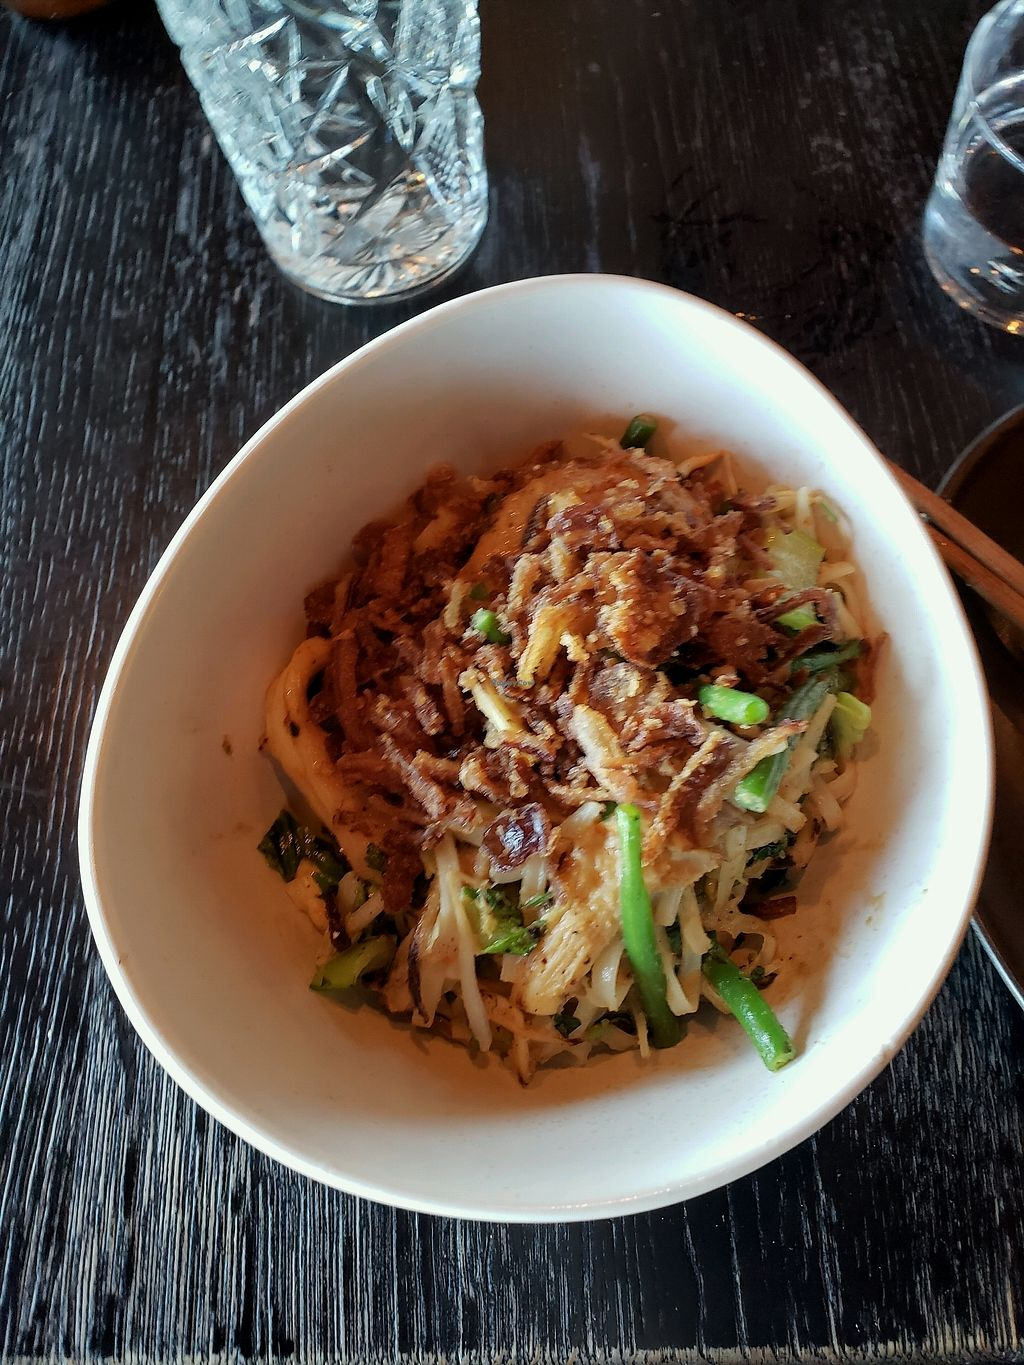 """Photo of Asia  by <a href=""""/members/profile/ginsanki"""">ginsanki</a> <br/>Rice Noodle Bowl <br/> March 29, 2018  - <a href='/contact/abuse/image/83370/377775'>Report</a>"""